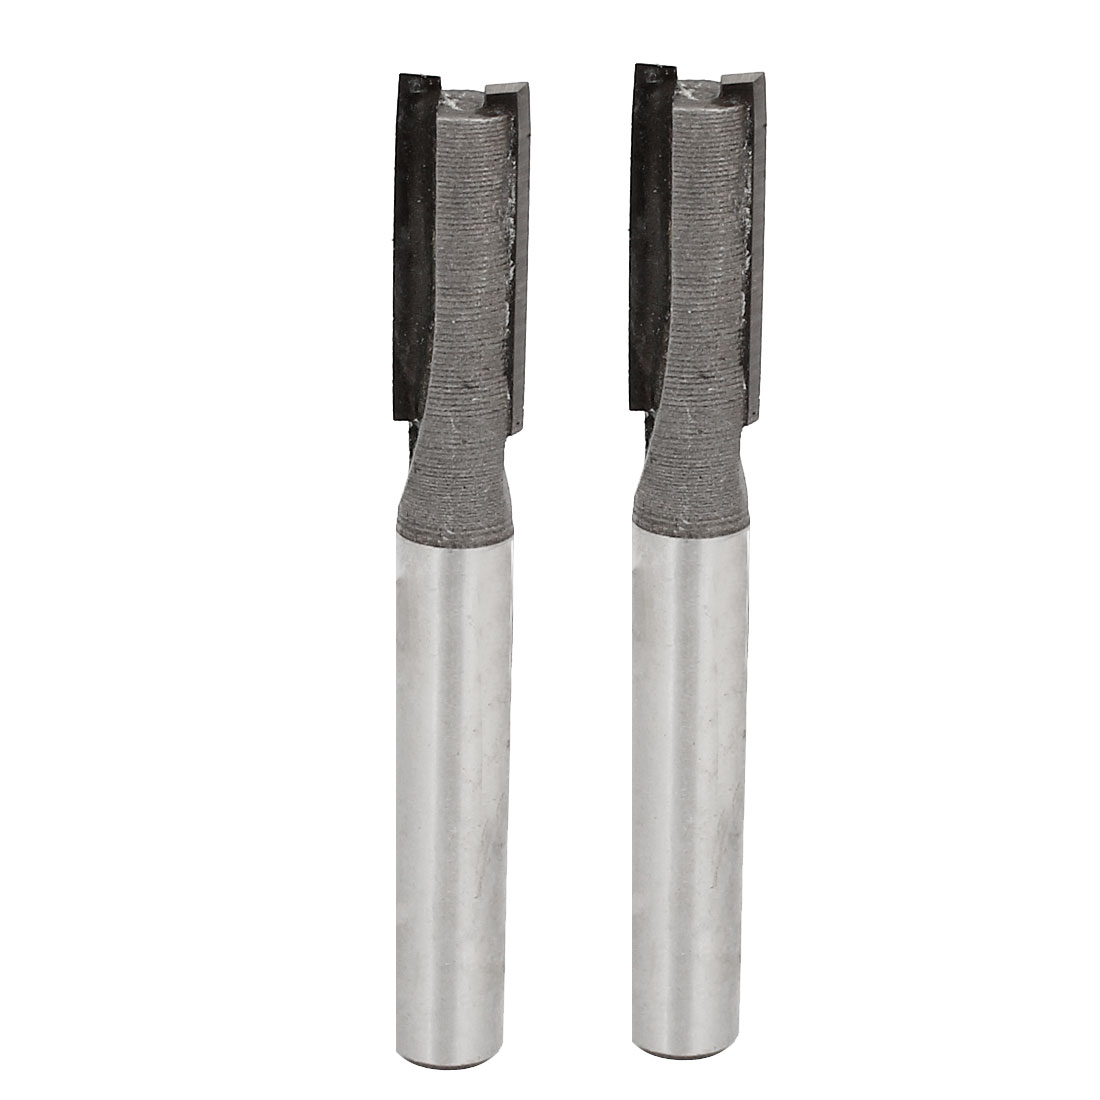 "55mm Long Cut Depth 1/4"" x 1/4"" 2 Flutes Straight Router Bit Cutter 2pcs"